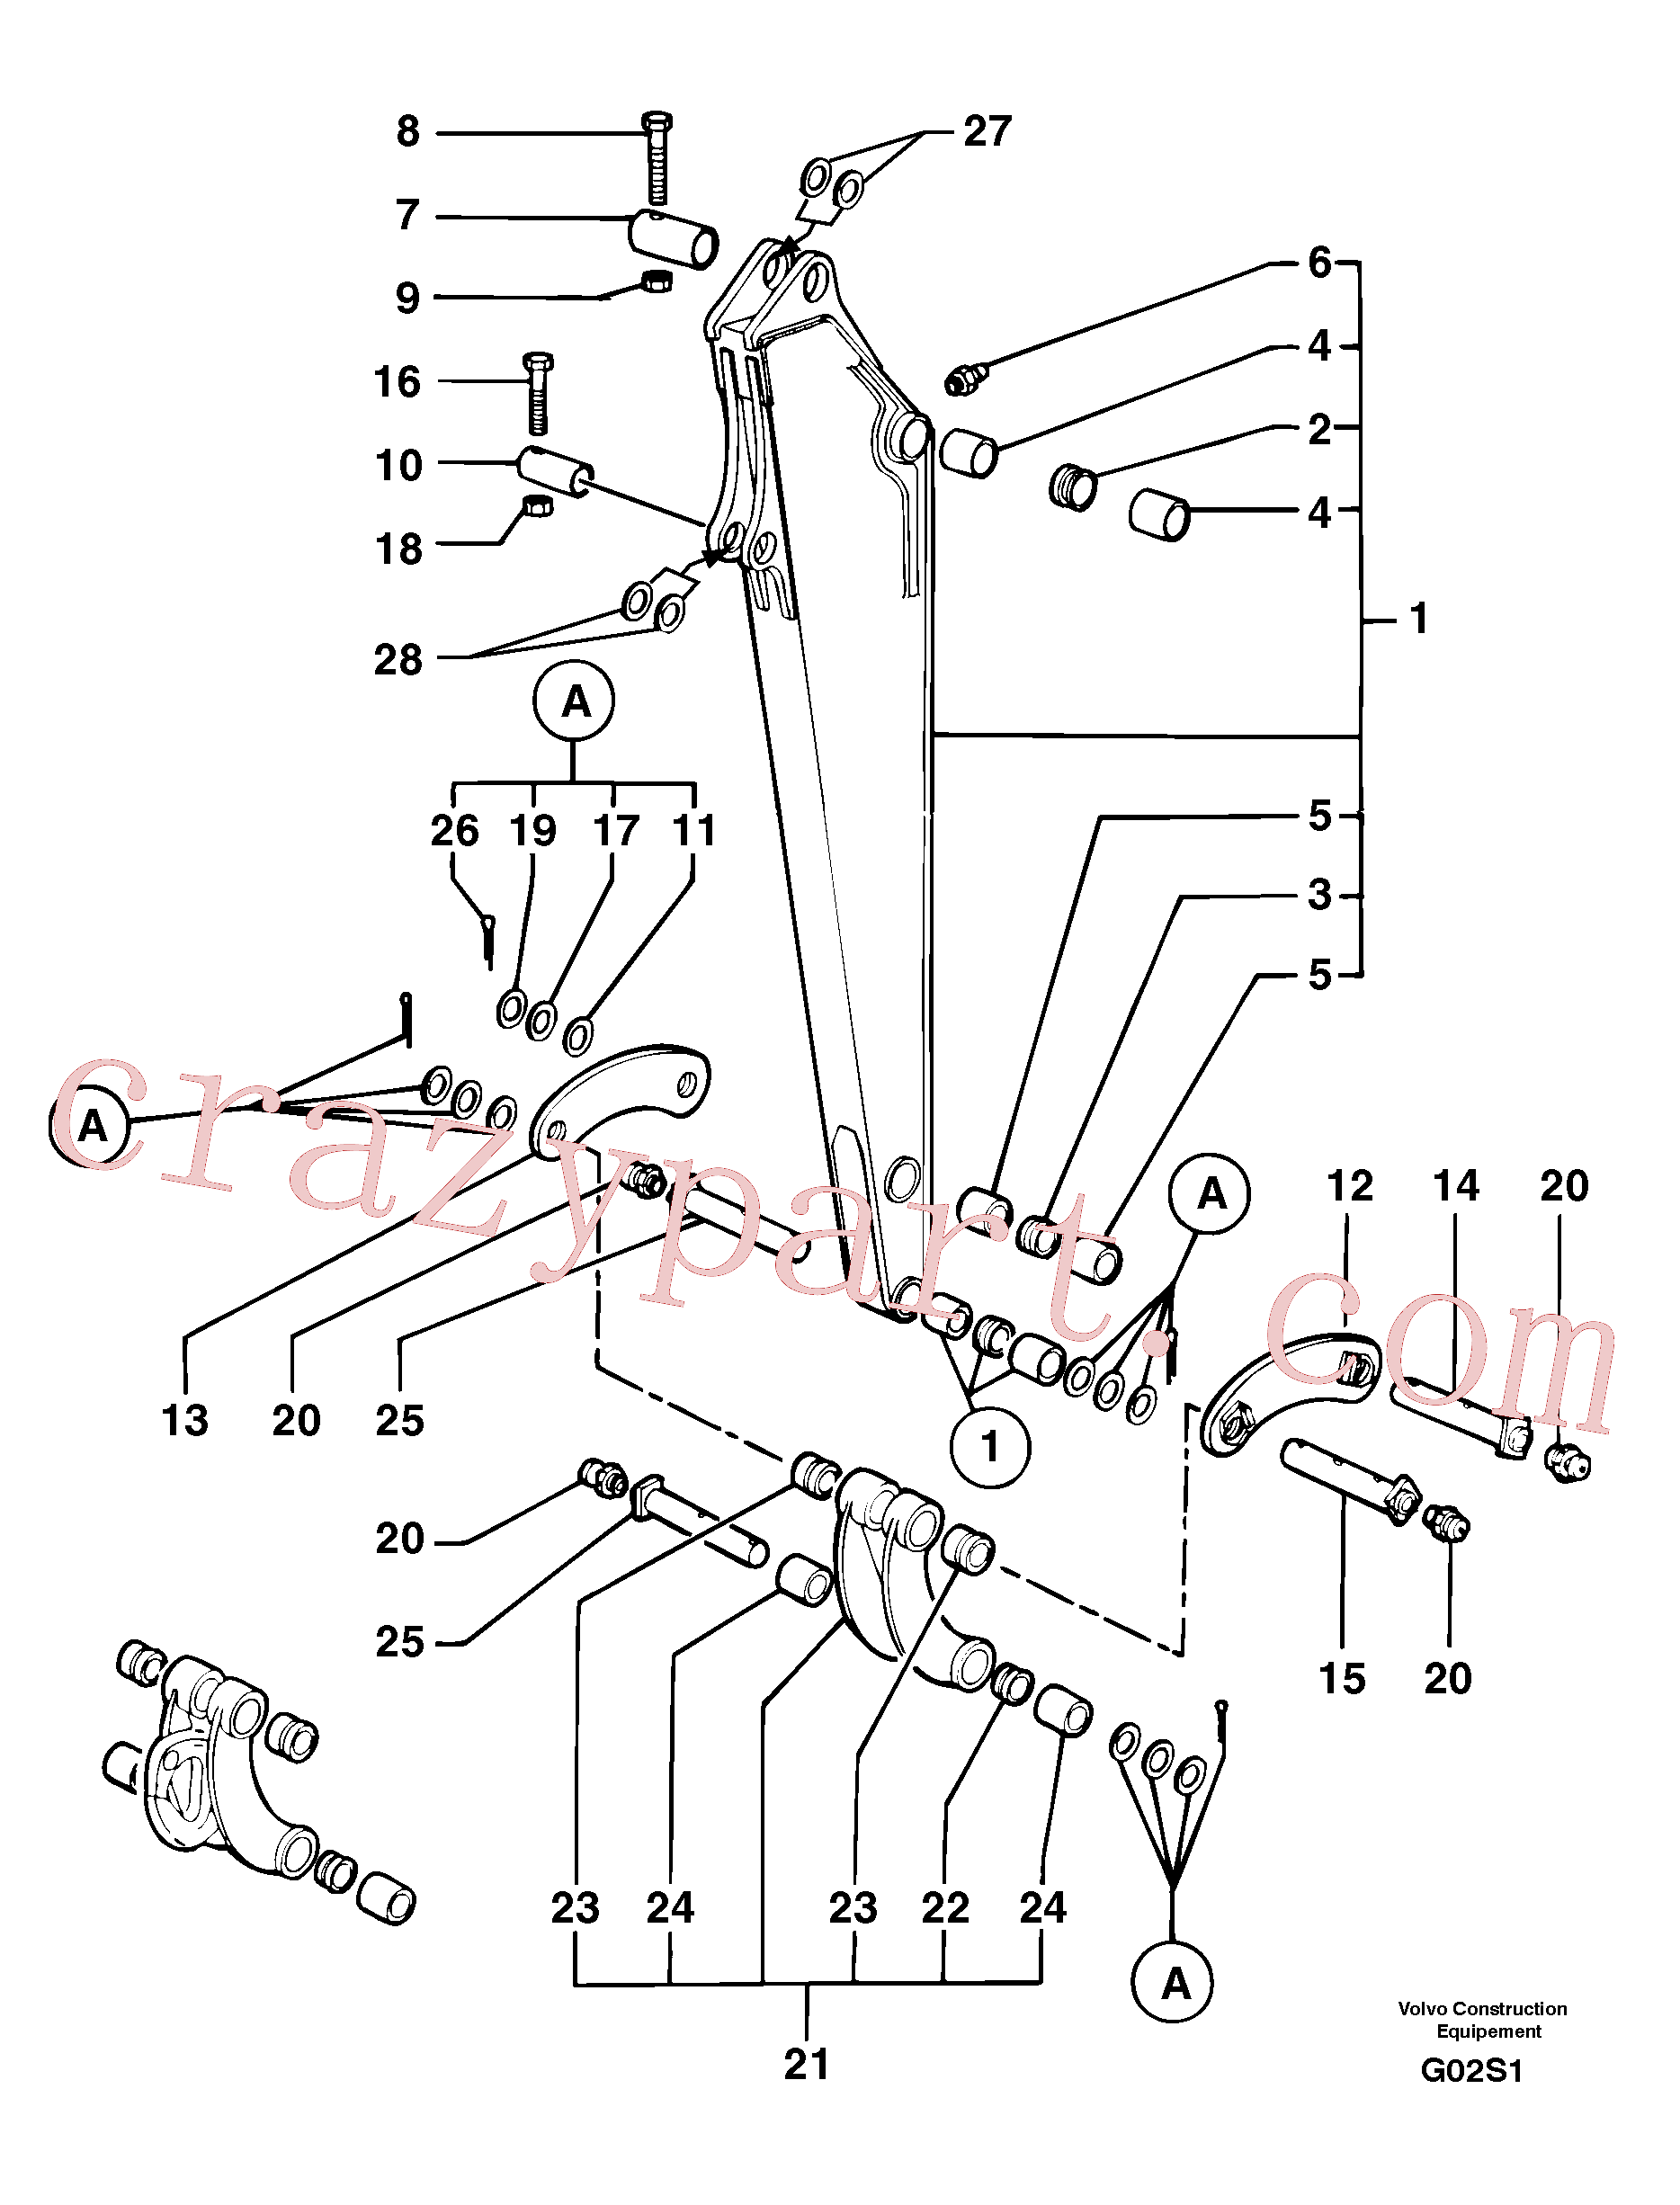 VOE11805829 for Volvo Dipper arm(G02S1 assembly)